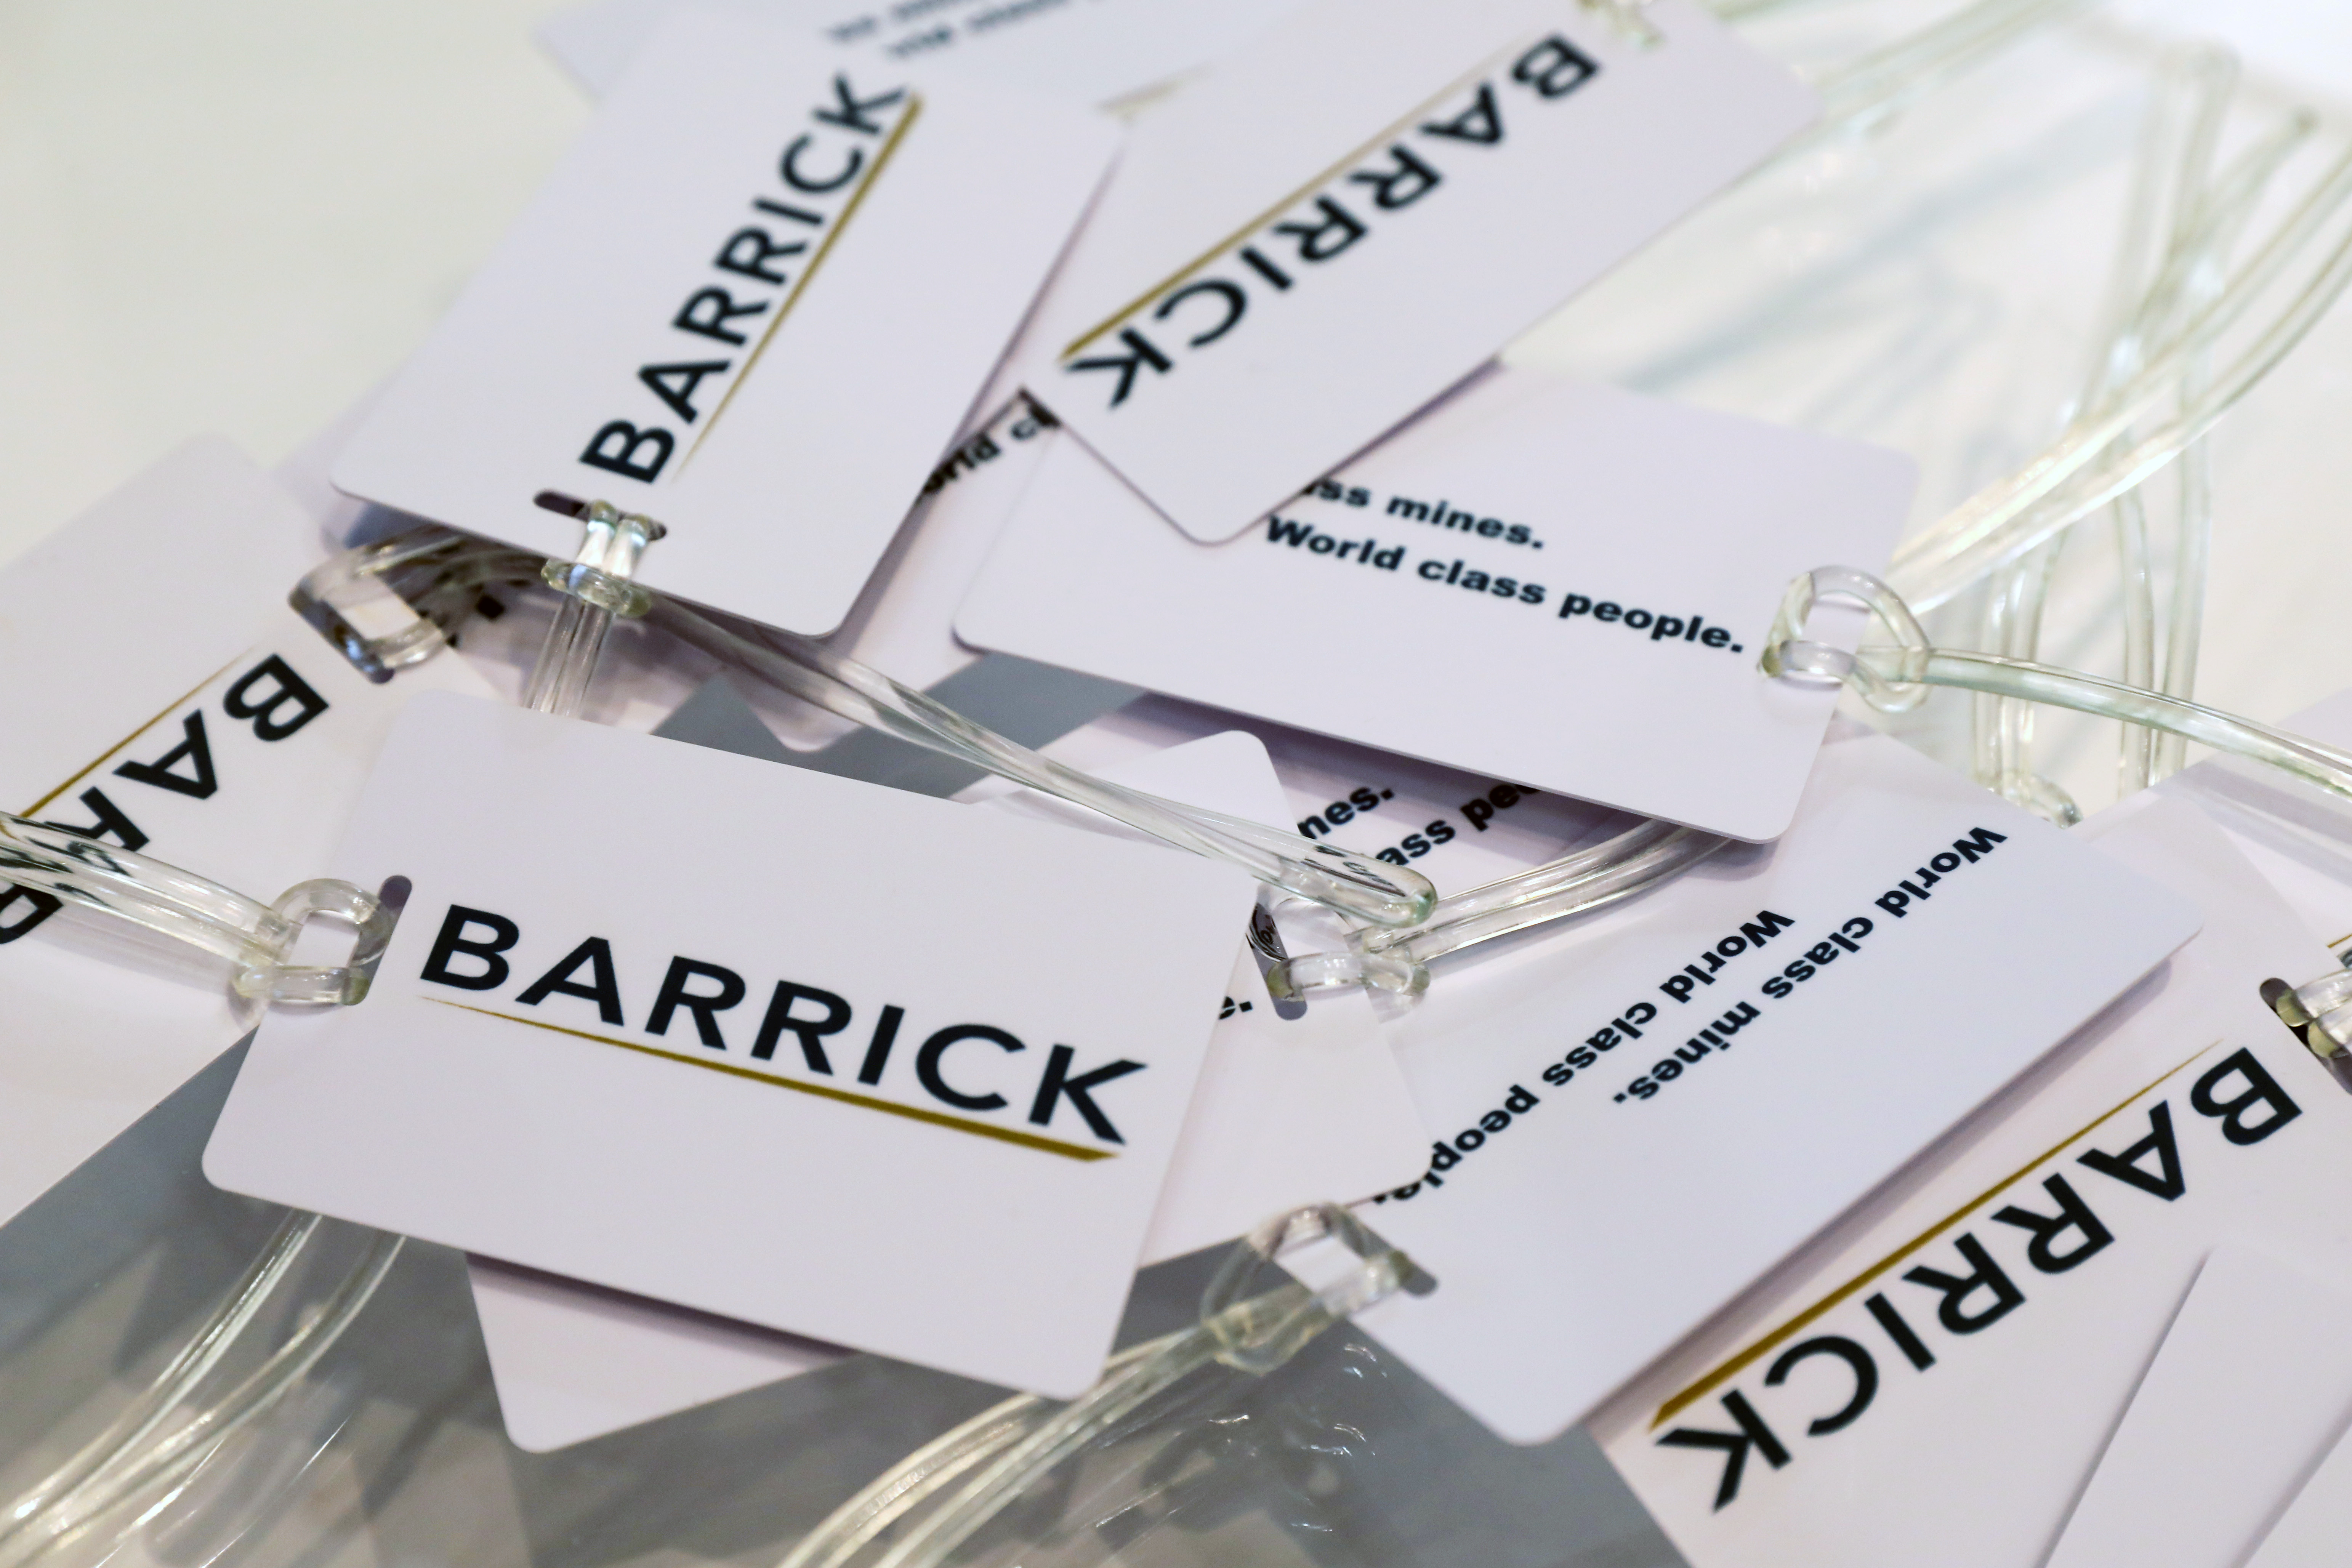 Souvenir luggage tags are displayed at a Barrick Gold Corp at the Prospectors and Developers Association of Canada (PDAC) annual conference in Toronto, Ontario, Canada March 1, 2020.  REUTERS/Chris Helgren